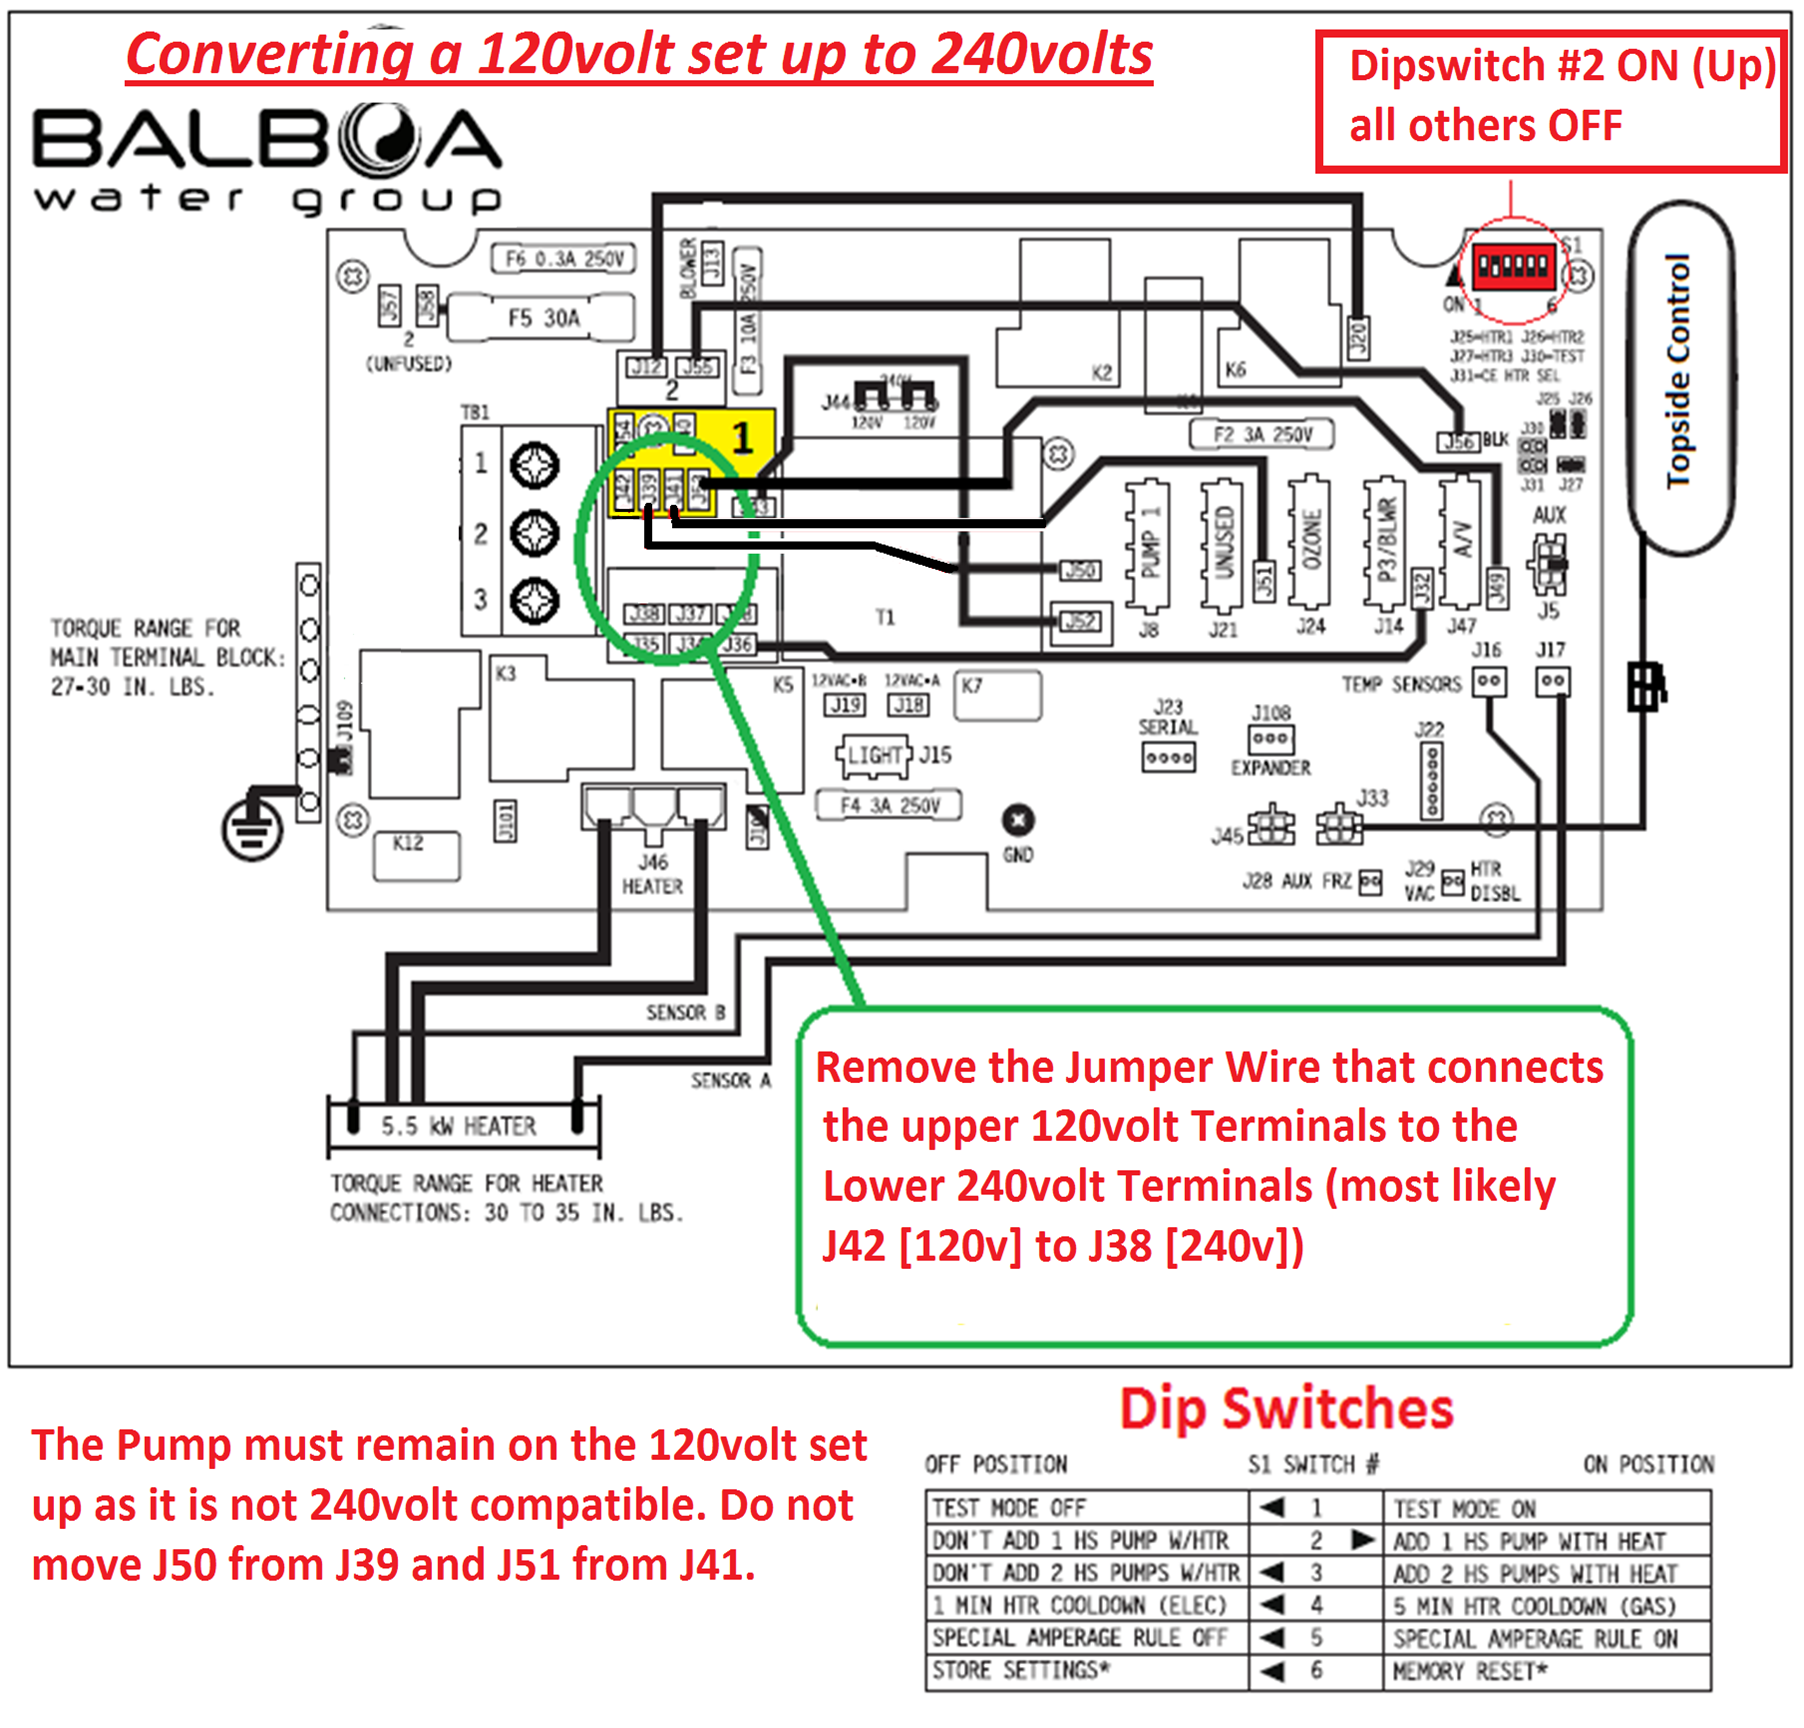 Electrical Installation - Converting a 120V Balboa BP to 240V ... on balboa spa parts, balboa vs series wiring, morgan spa diagram, dimension one spa circuit board diagram, balboa spa lights, swimming pool pump plumbing diagram, balboa spa relay, spa pump installation diagram, watkins control diagram, balboa spa plumbing diagram, balboa spa motor, typical swimming pool plumbing diagram,